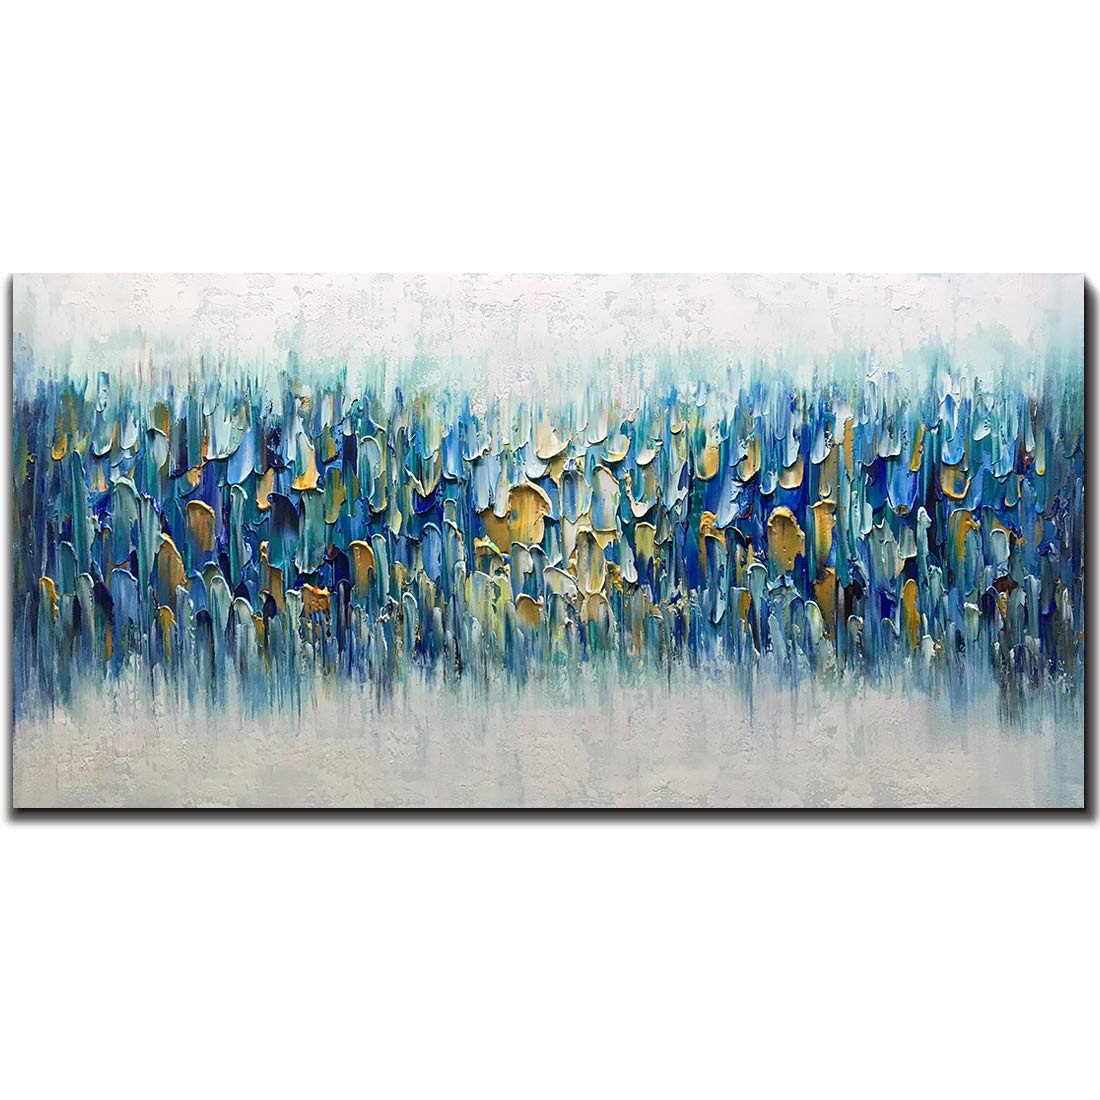 AMEI Art Paintings,24x48Inch 3D Hand Painted on Canvas Blue Rhapsody Abstract Paintings Seascape Artwork Simple Modern Home Decor Wall Art Stretched and Framed Ready to Hang